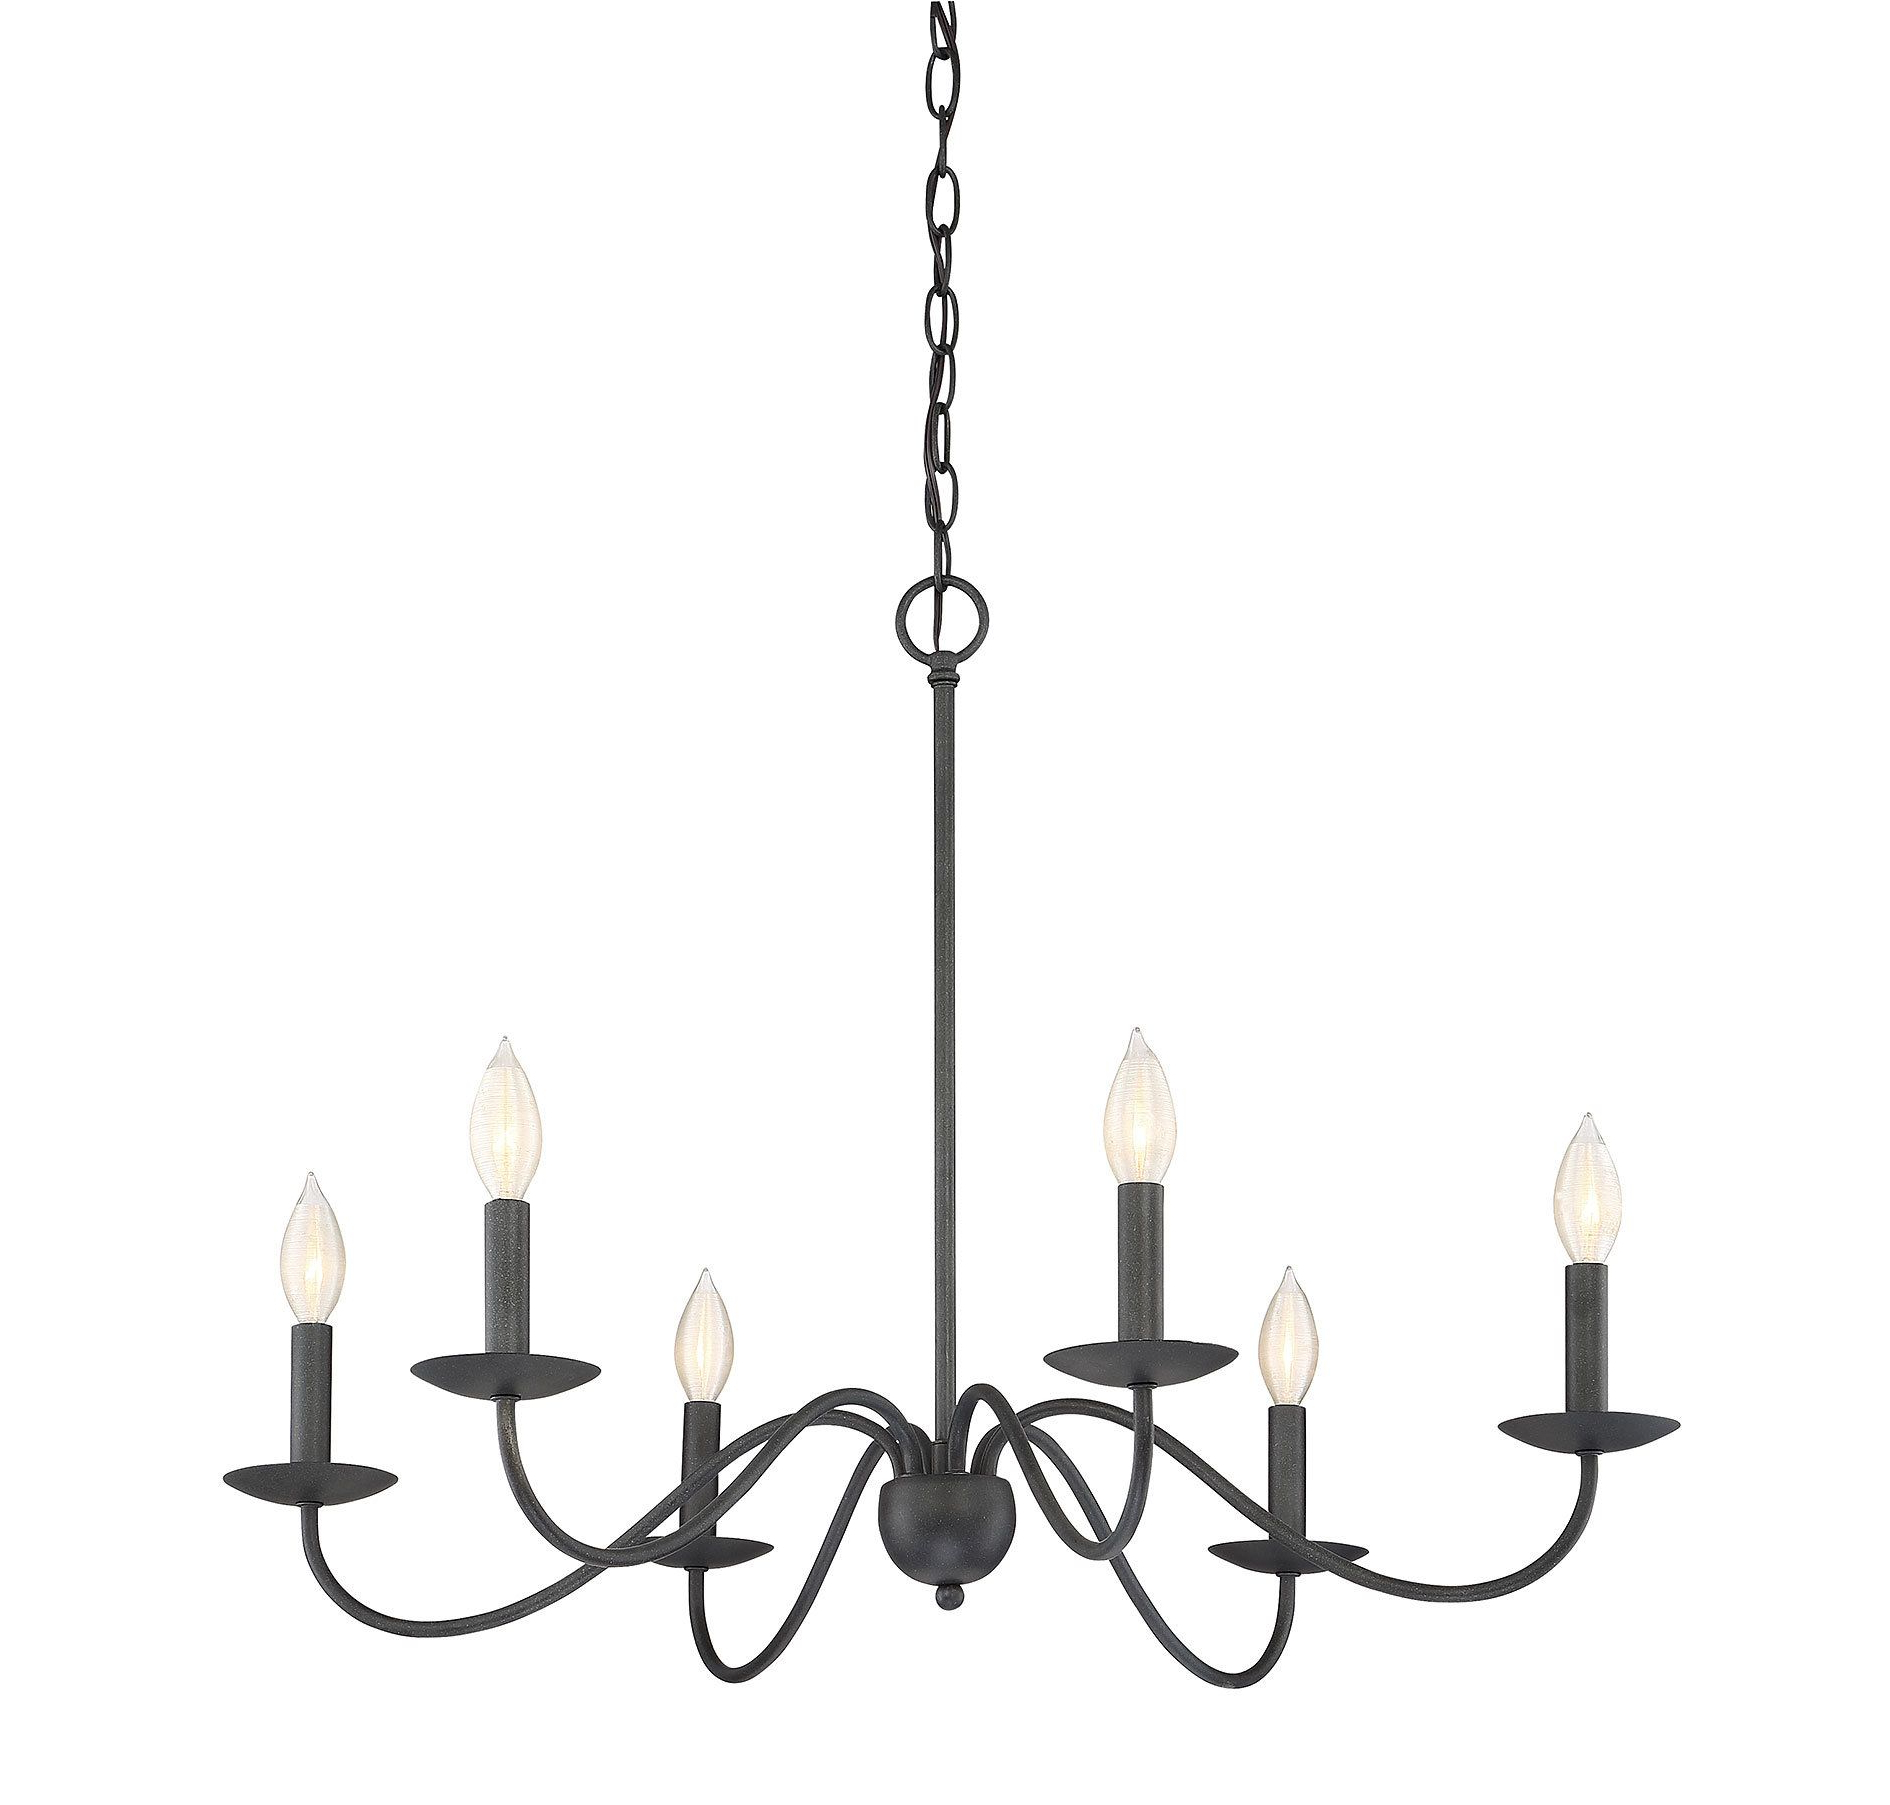 Products For Widely Used Perseus 6 Light Candle Style Chandeliers (Gallery 4 of 20)